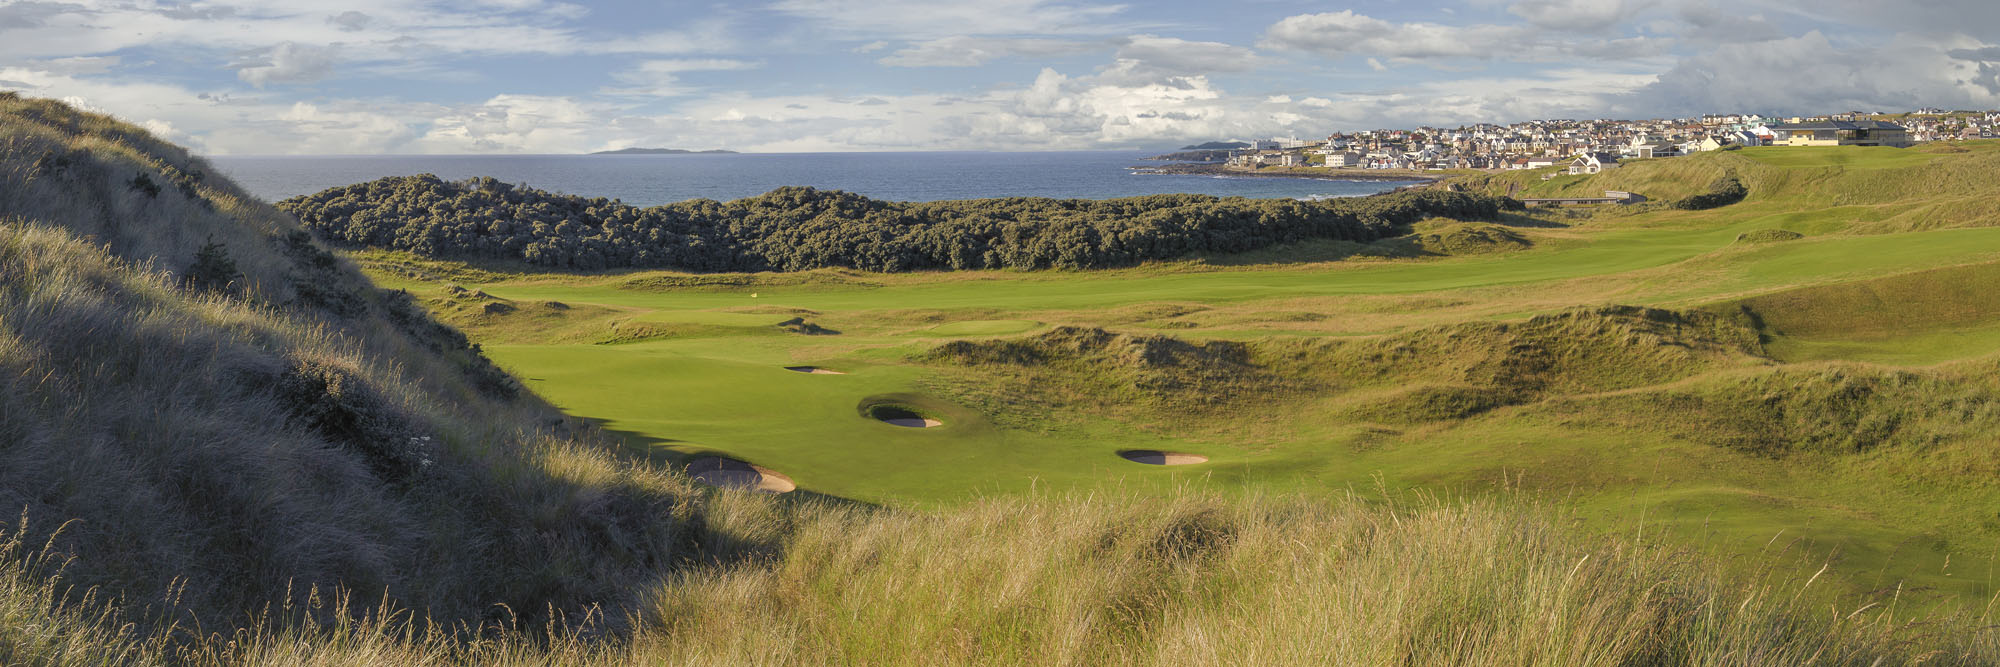 Golf Course Image - Portstewart No. 8